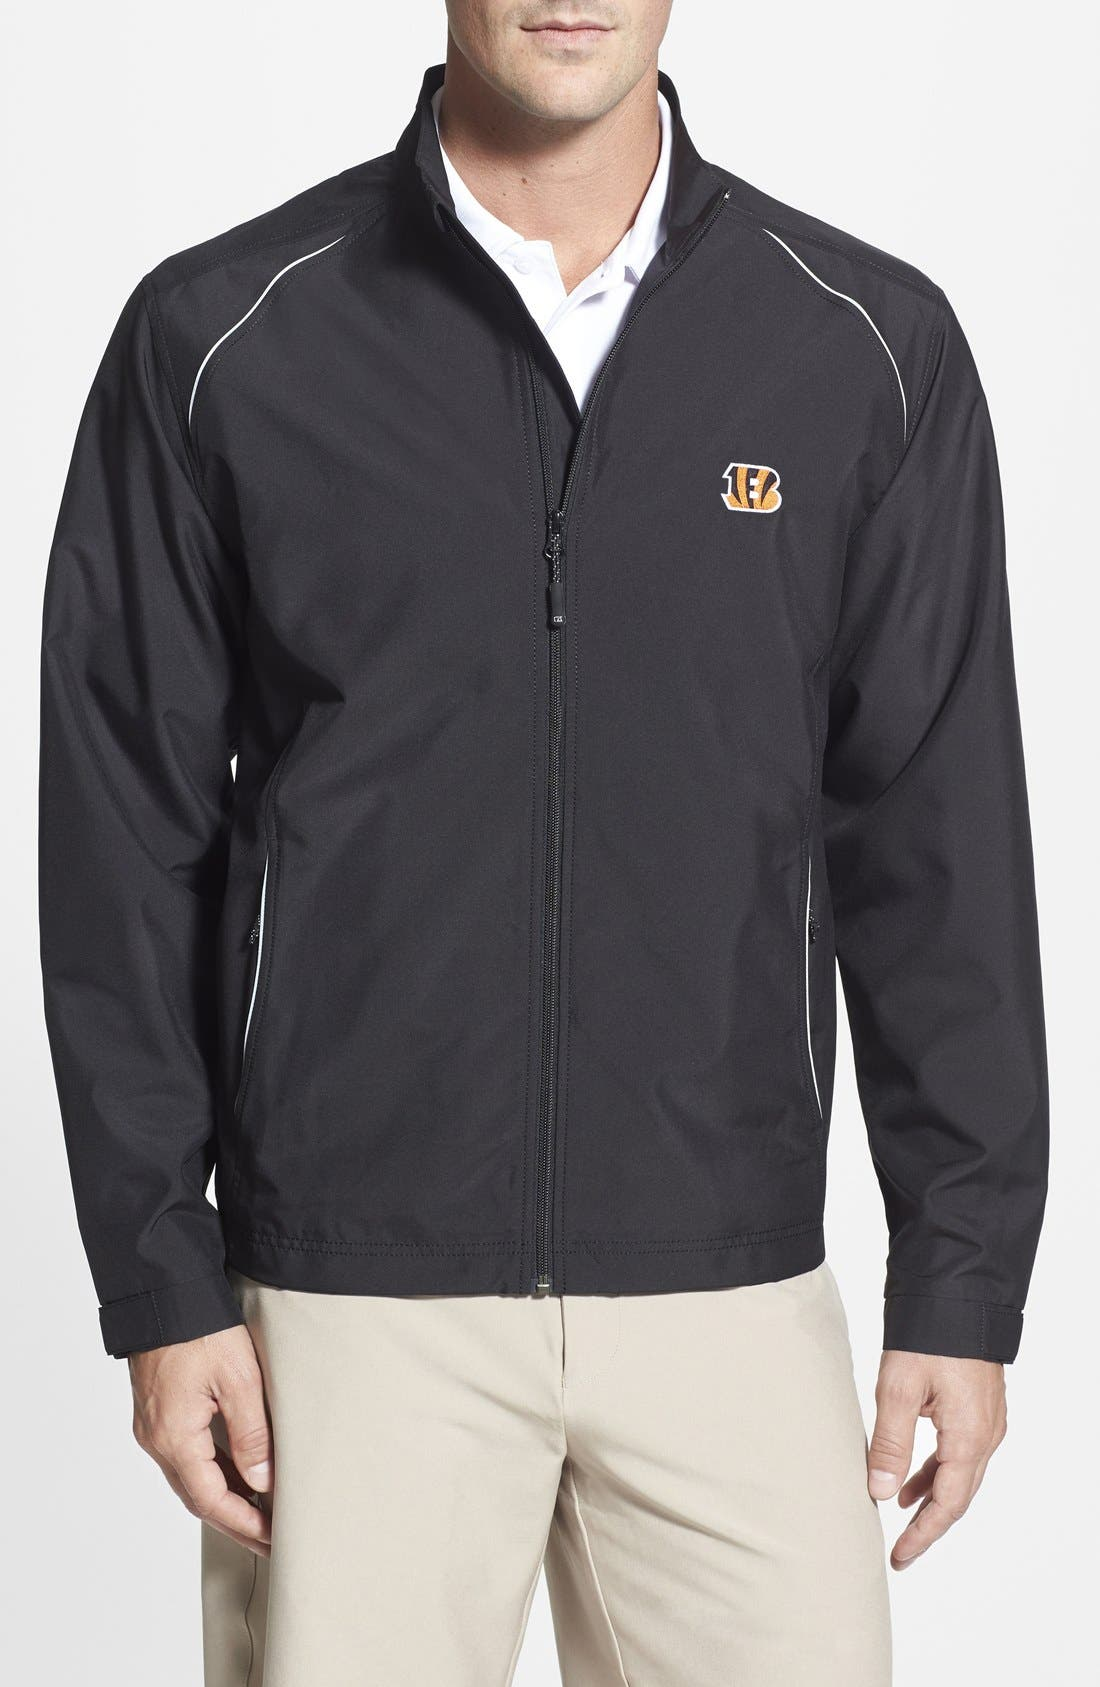 Cutter & Buck 'Cincinnati Bengals - Beacon' WeatherTec Wind & Water Resistant Jacket